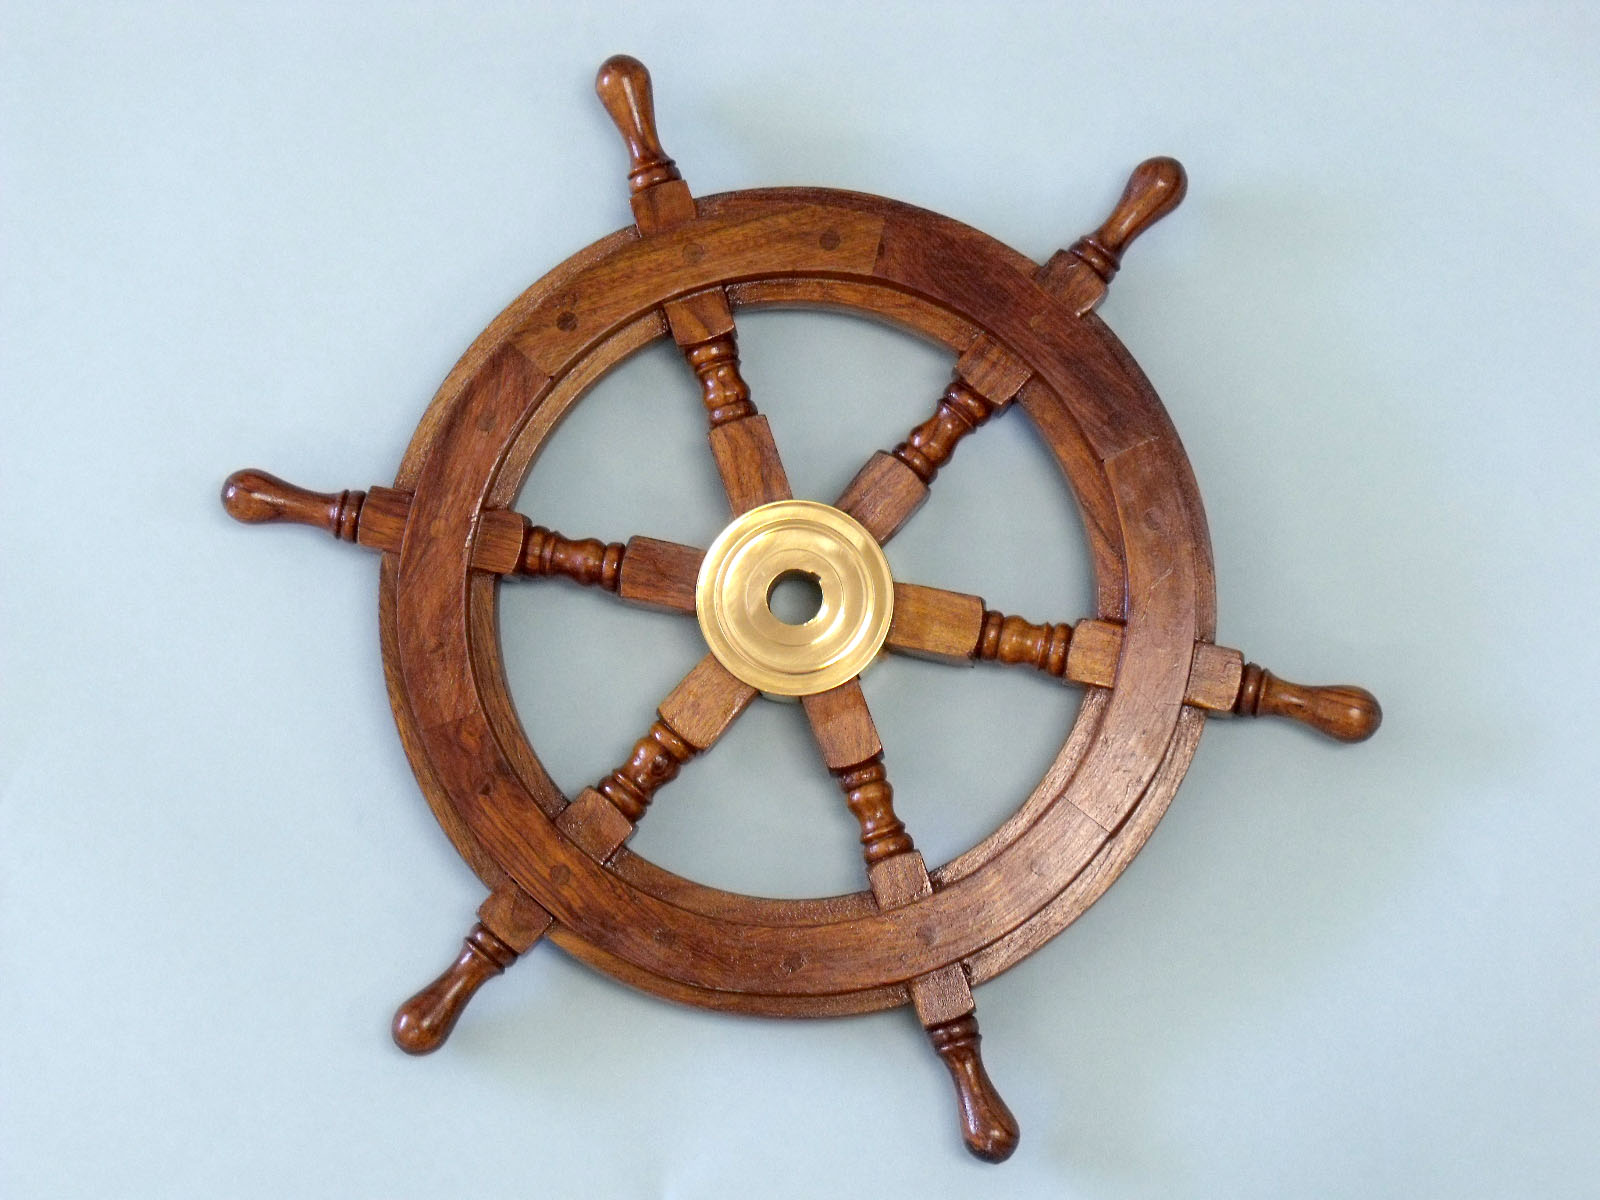 Wooden Ship Wheel Makes A Great Gift For Nautical Enthusiasts And Beautiful Decor